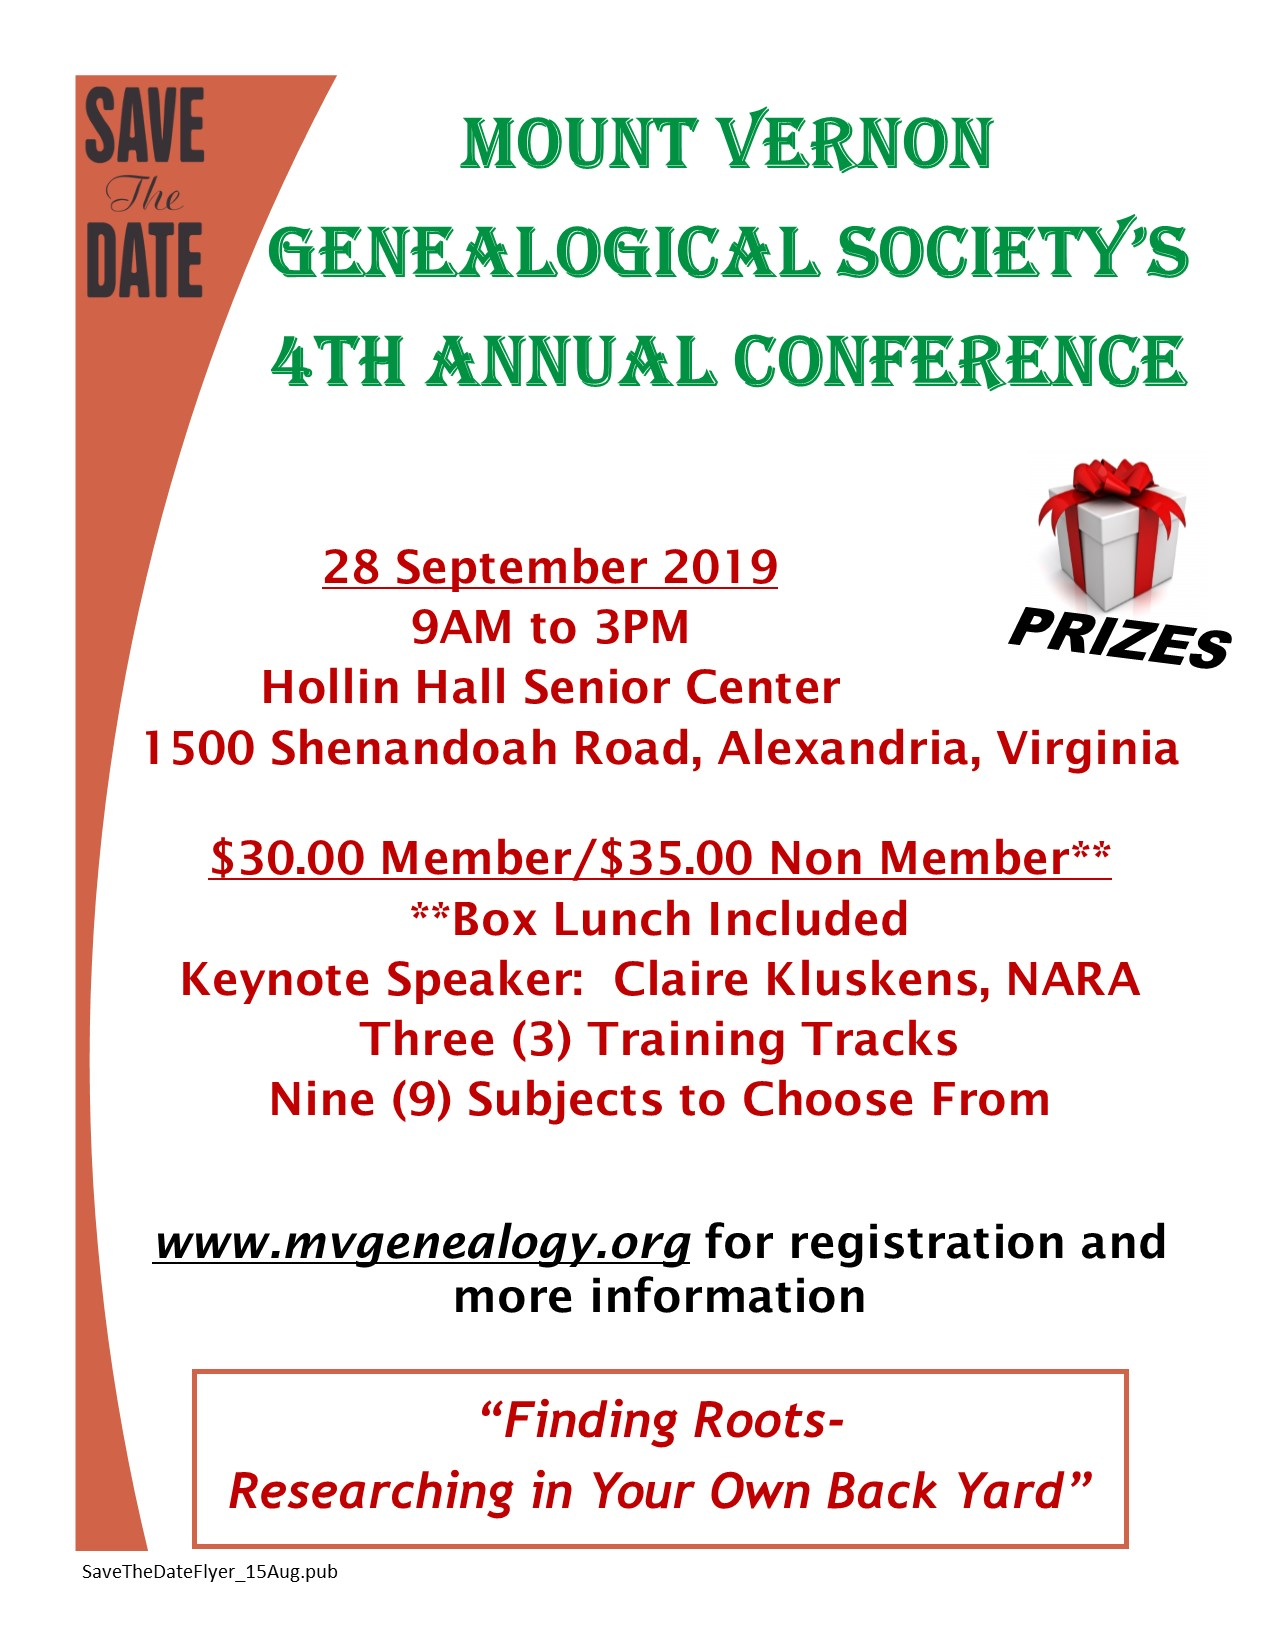 MVGS 4th Annual Conference